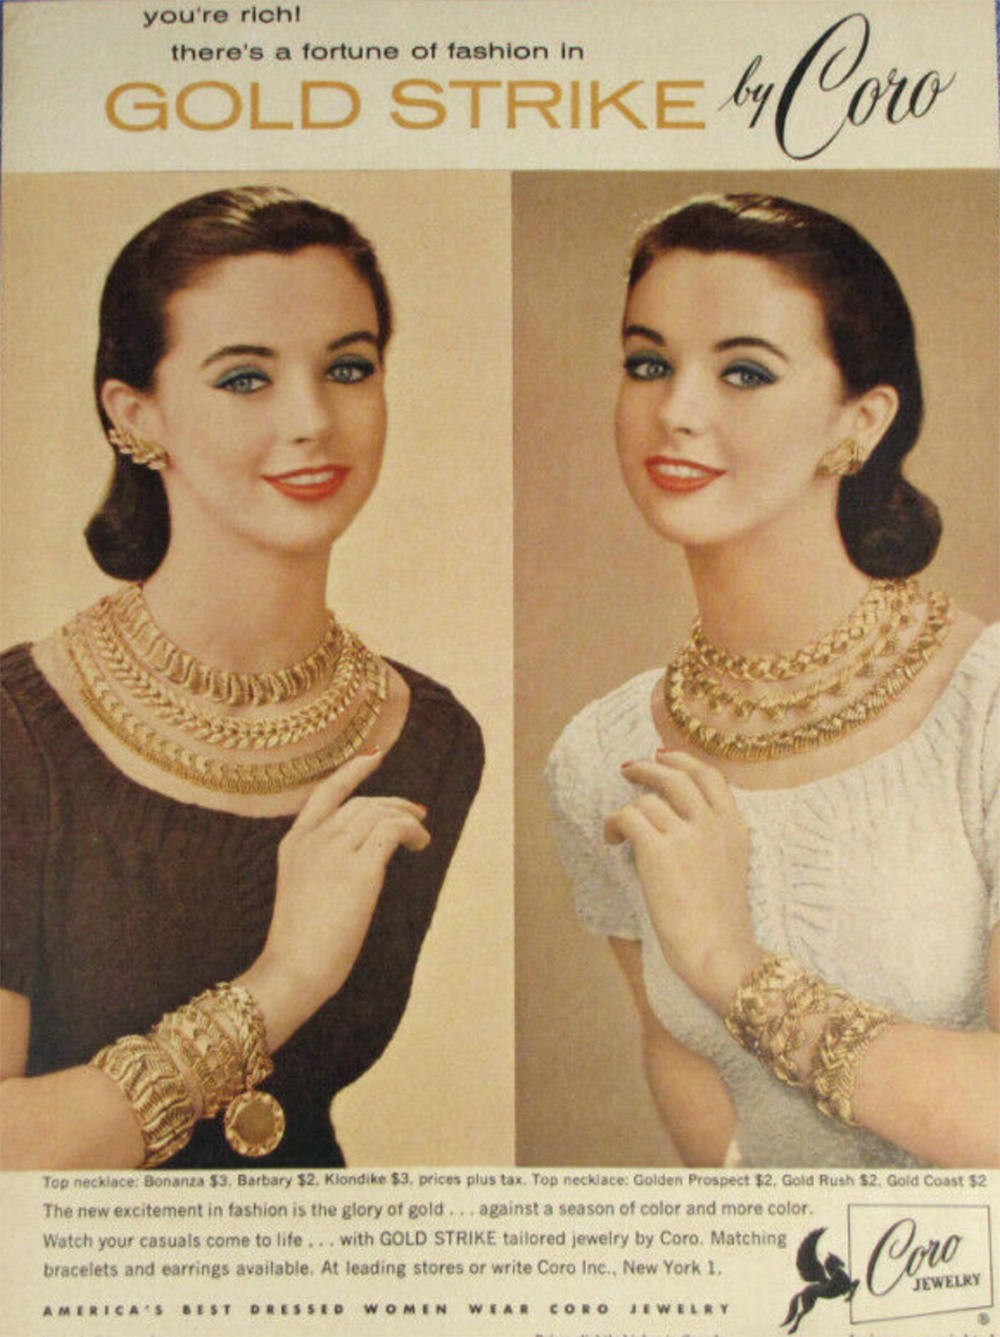 Coro costume jewelry ad from the 1950s